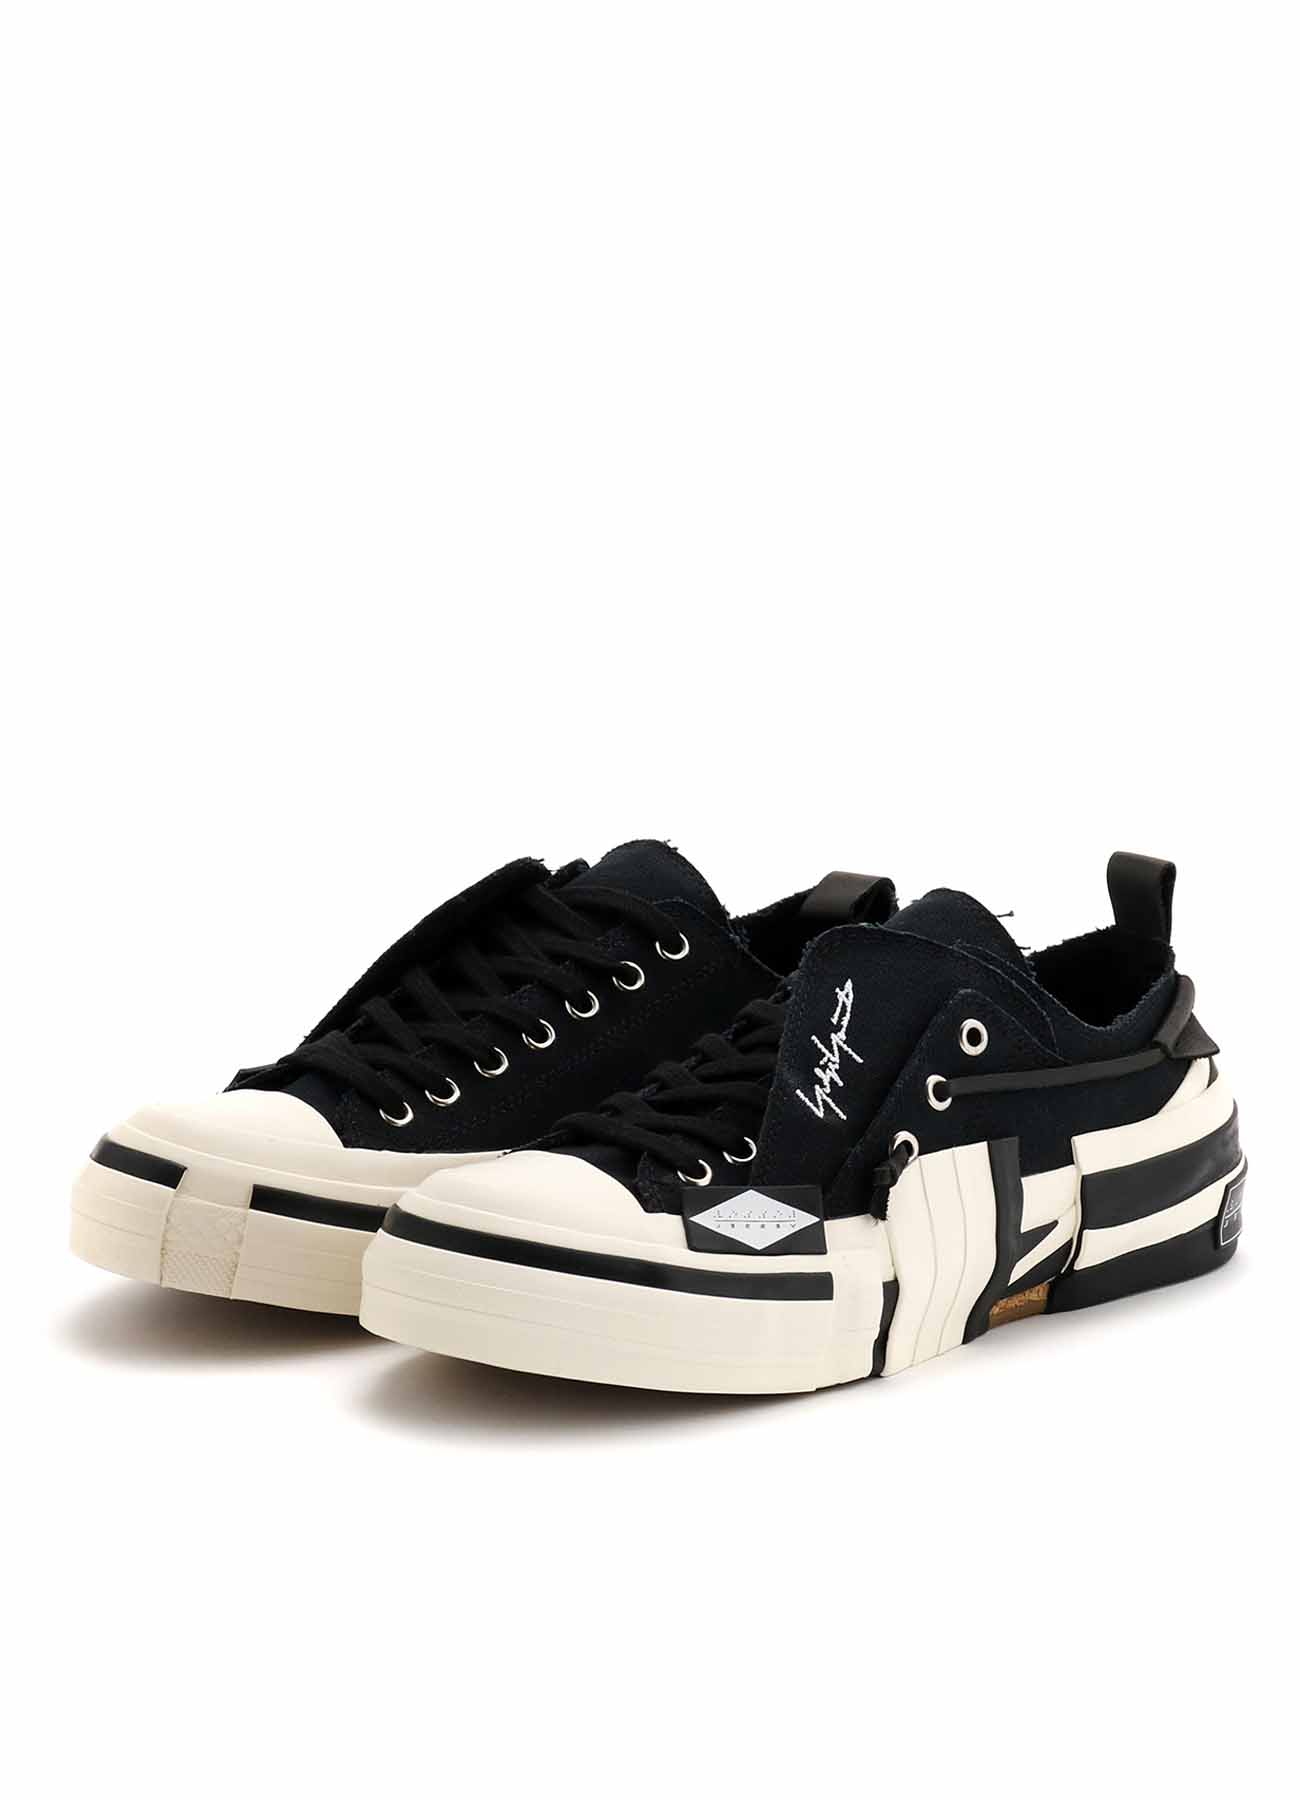 Yohji Yamamoto × VESSEL C/CANVAS BK LAYERED LOW TOP SNEAKERS